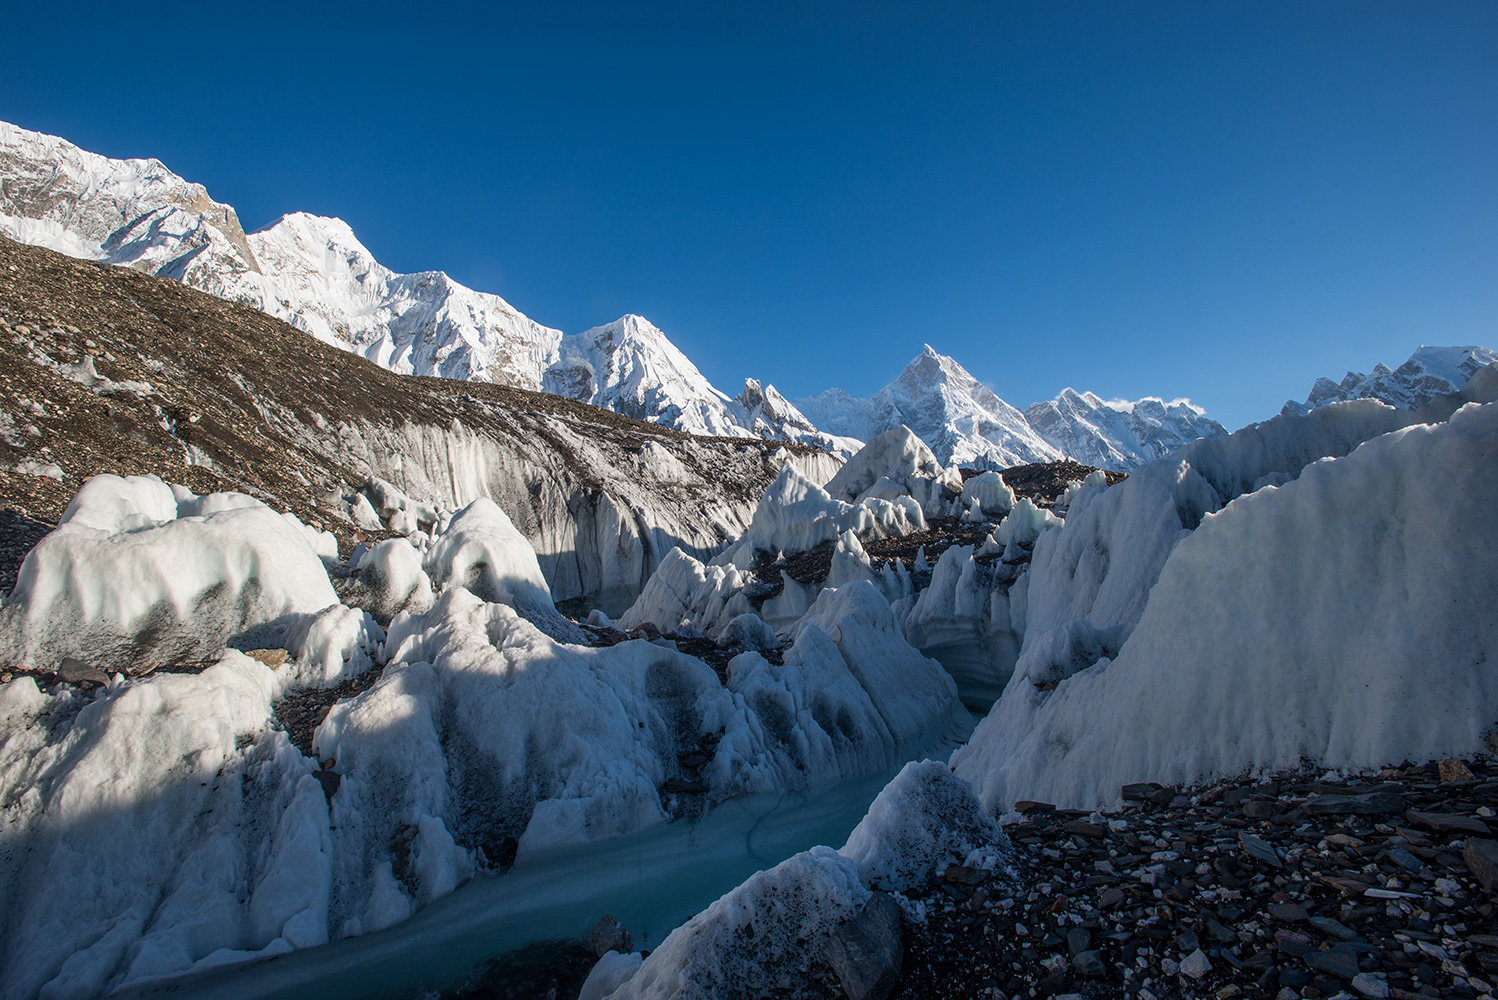 From the Baltoro glacier at Goro